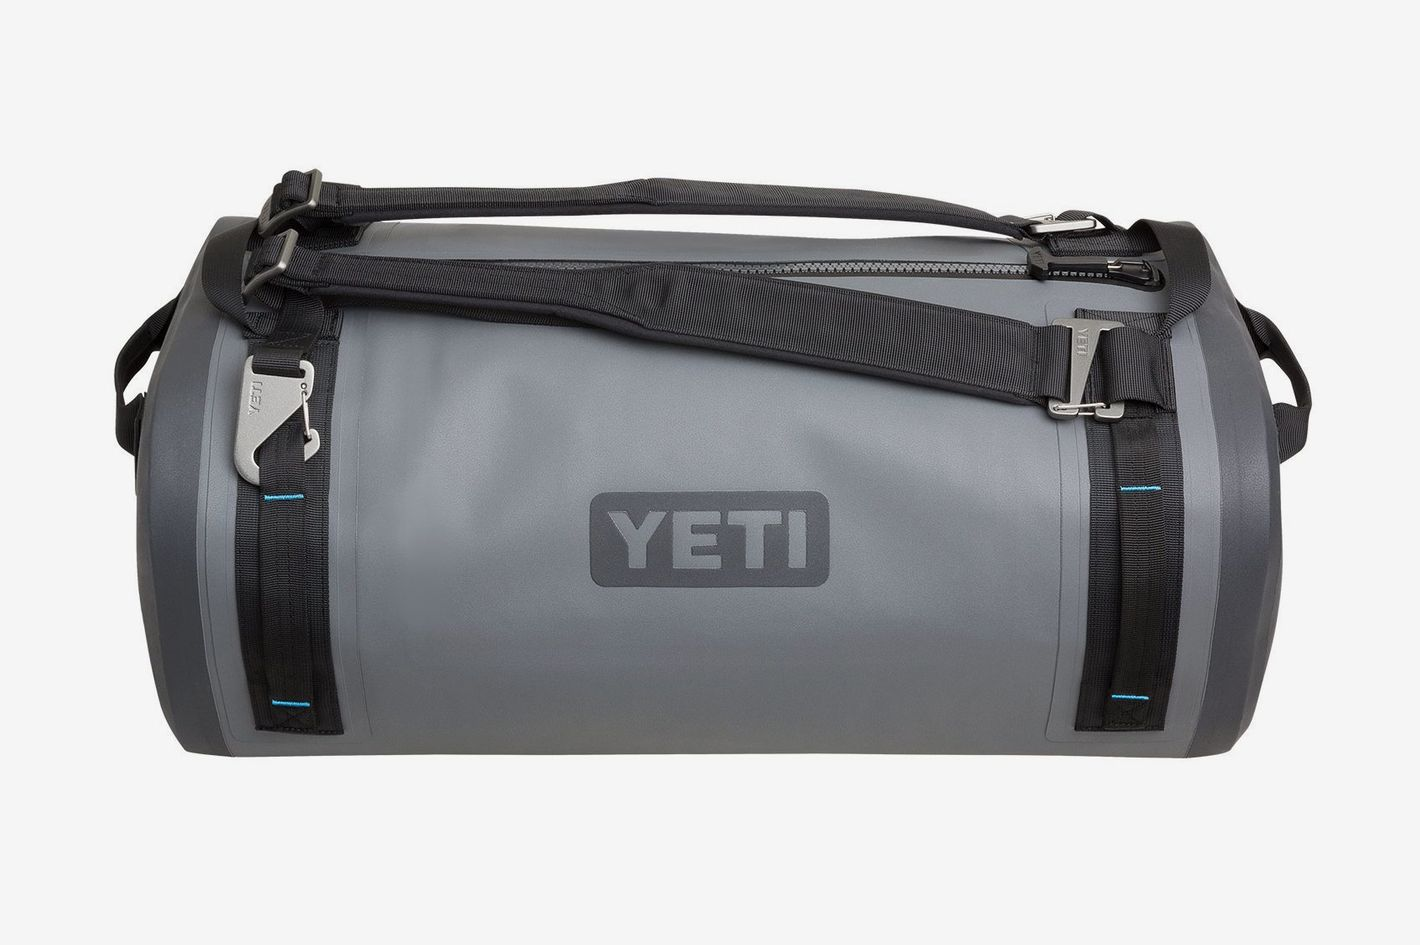 Yeti Panga Airtight Waterproof Submersible Duffel Bag 5505d65f47df2